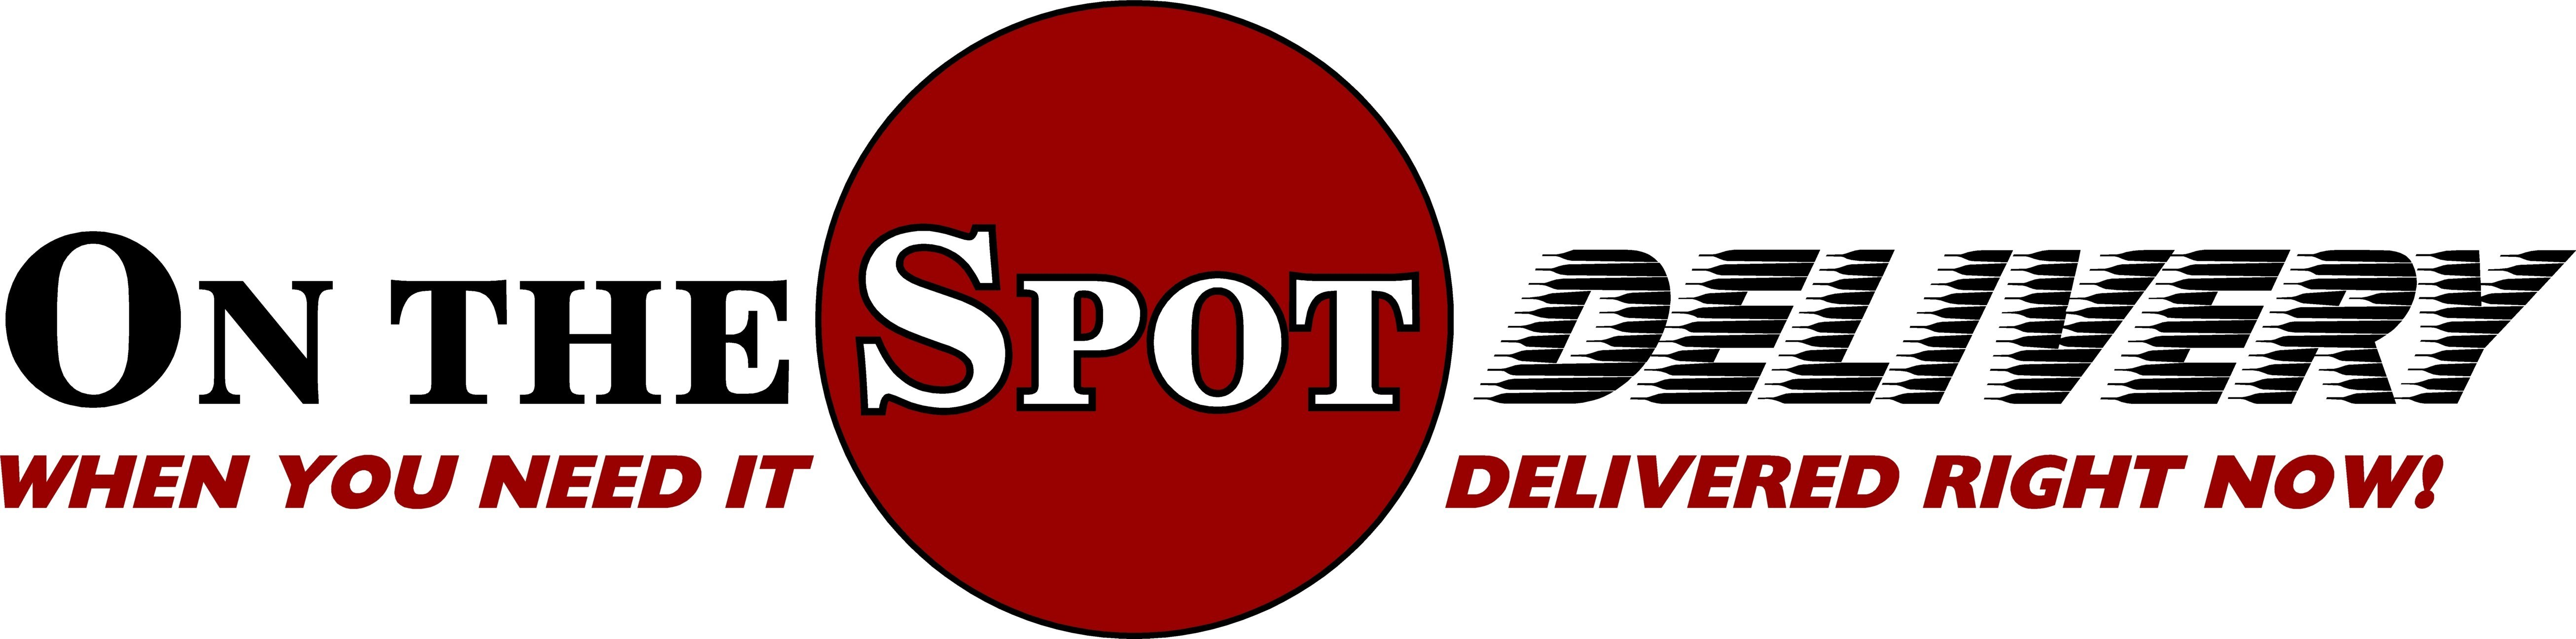 On The Spot Delivery Reviews Tulsa Ok Angie S List